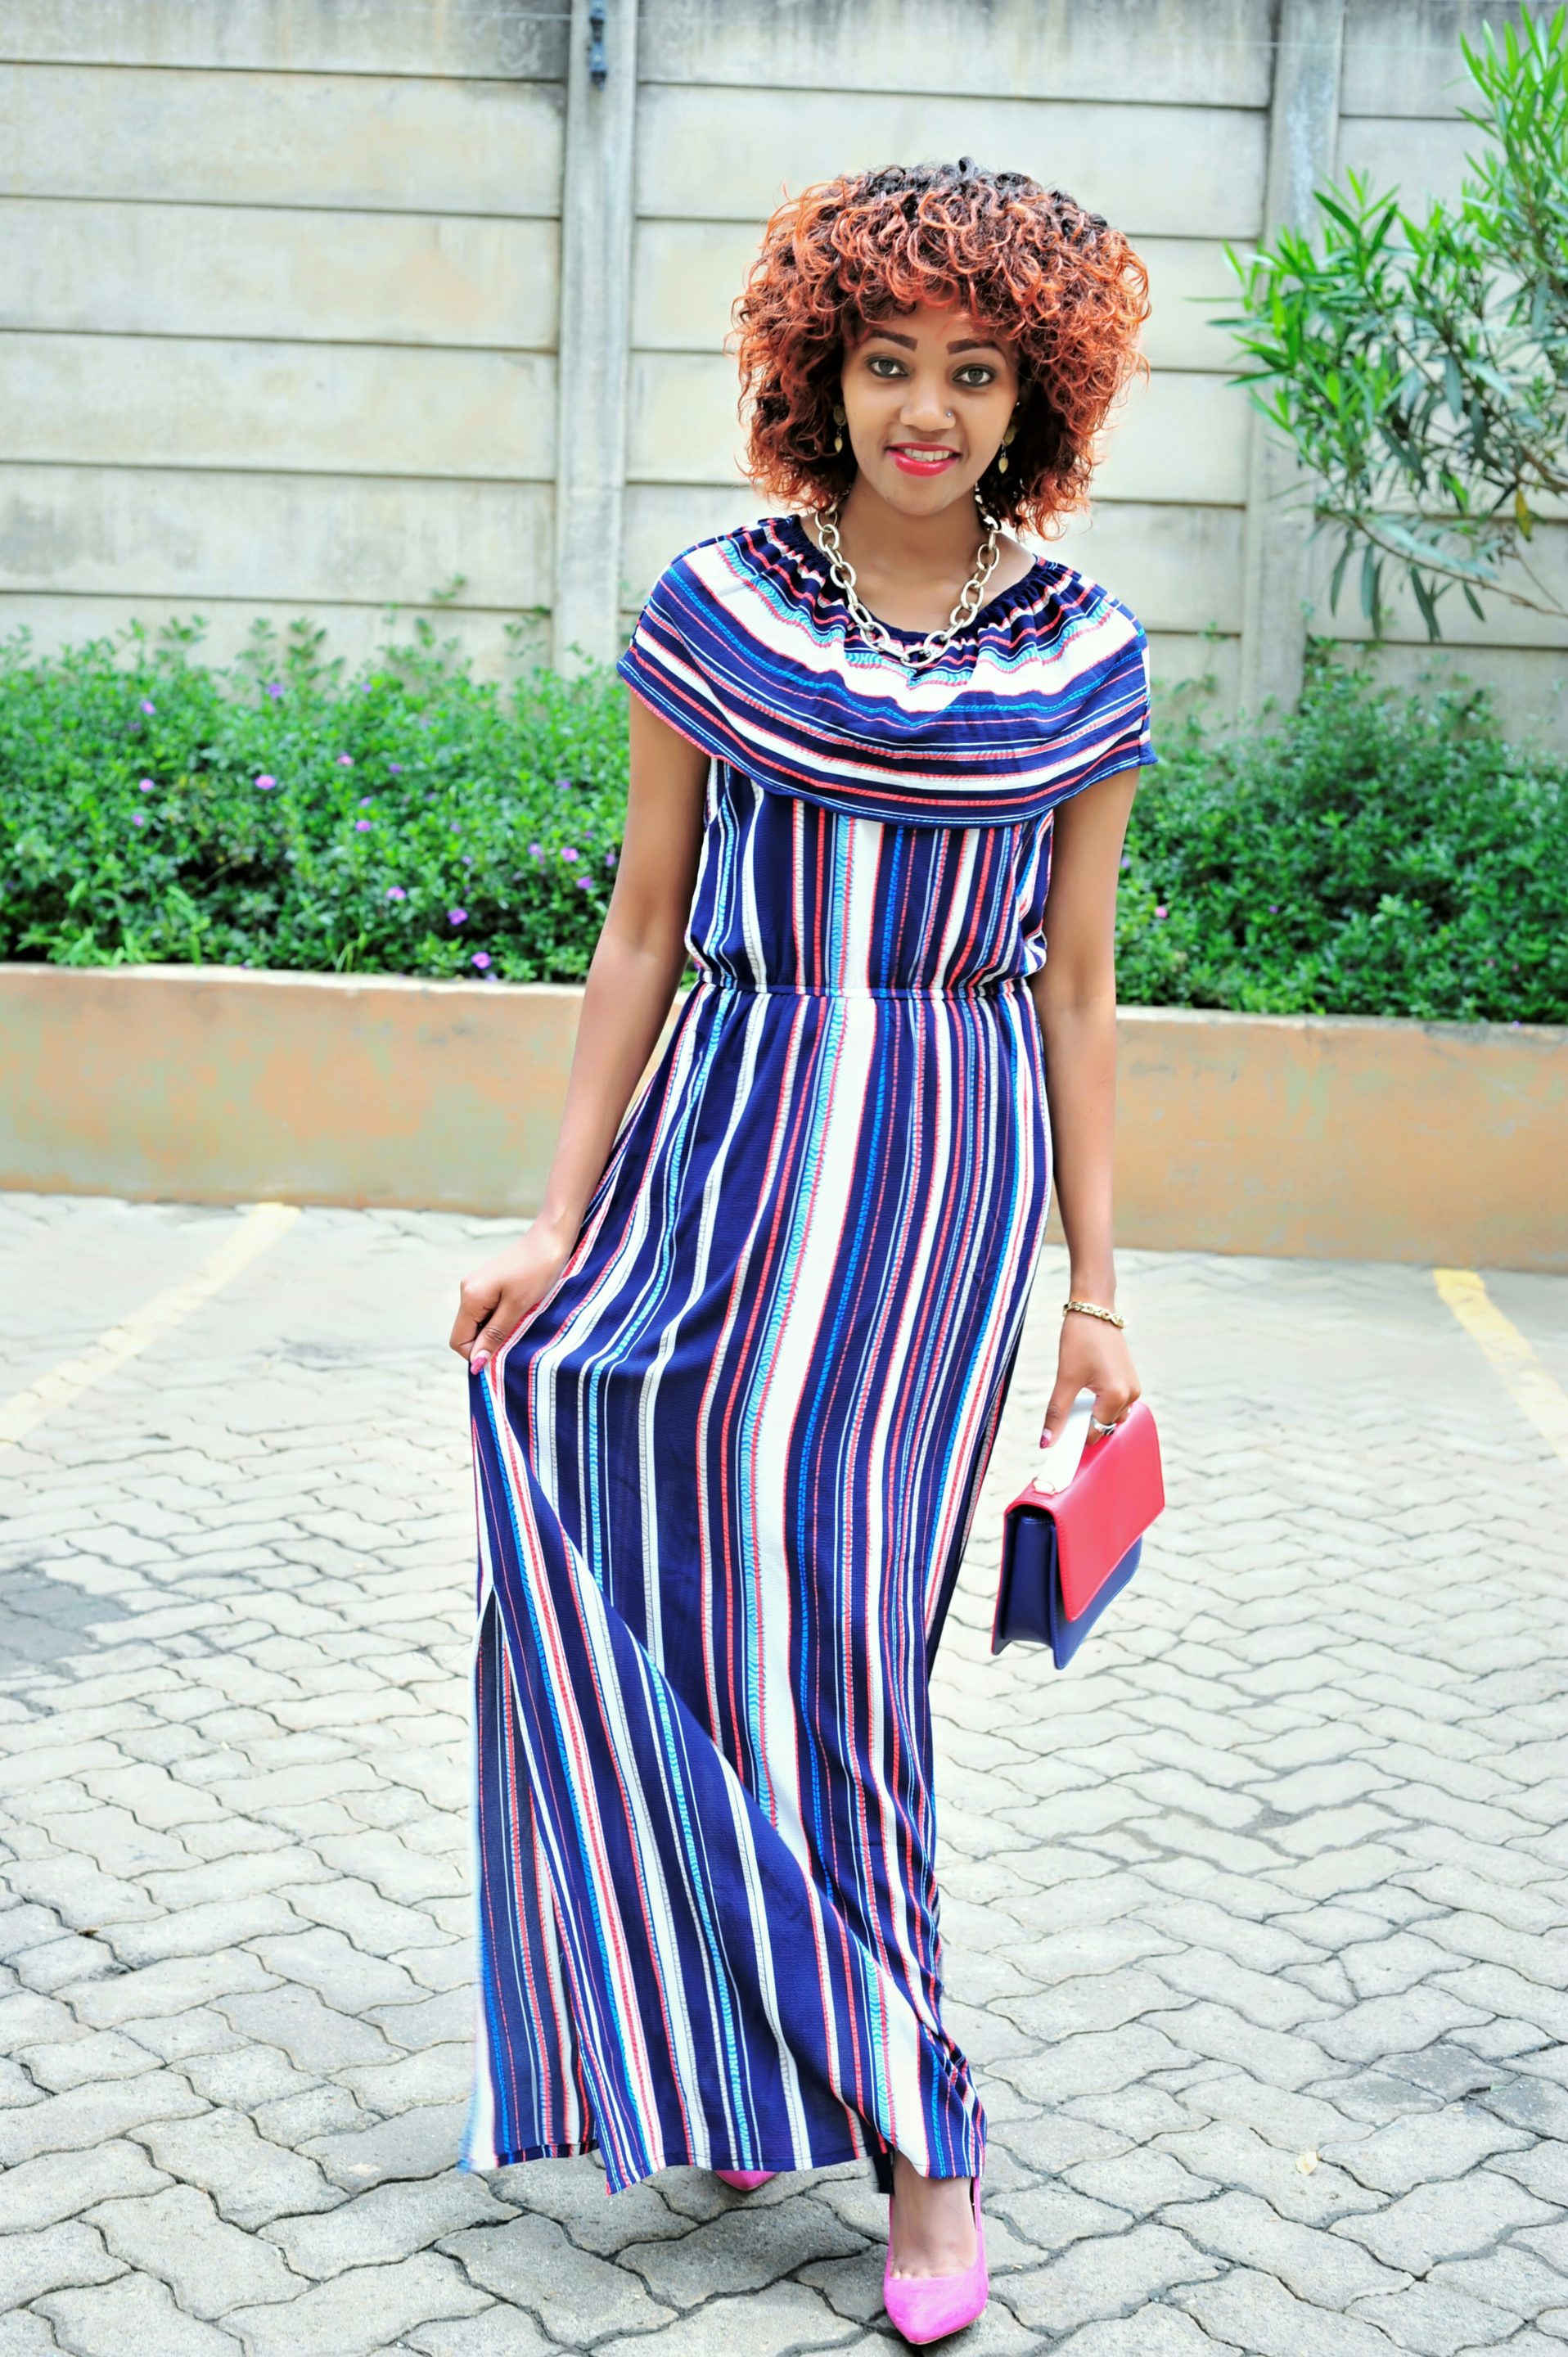 153468cb7761 6 easy tips on how to wear a maxi dress for short girls and look ...